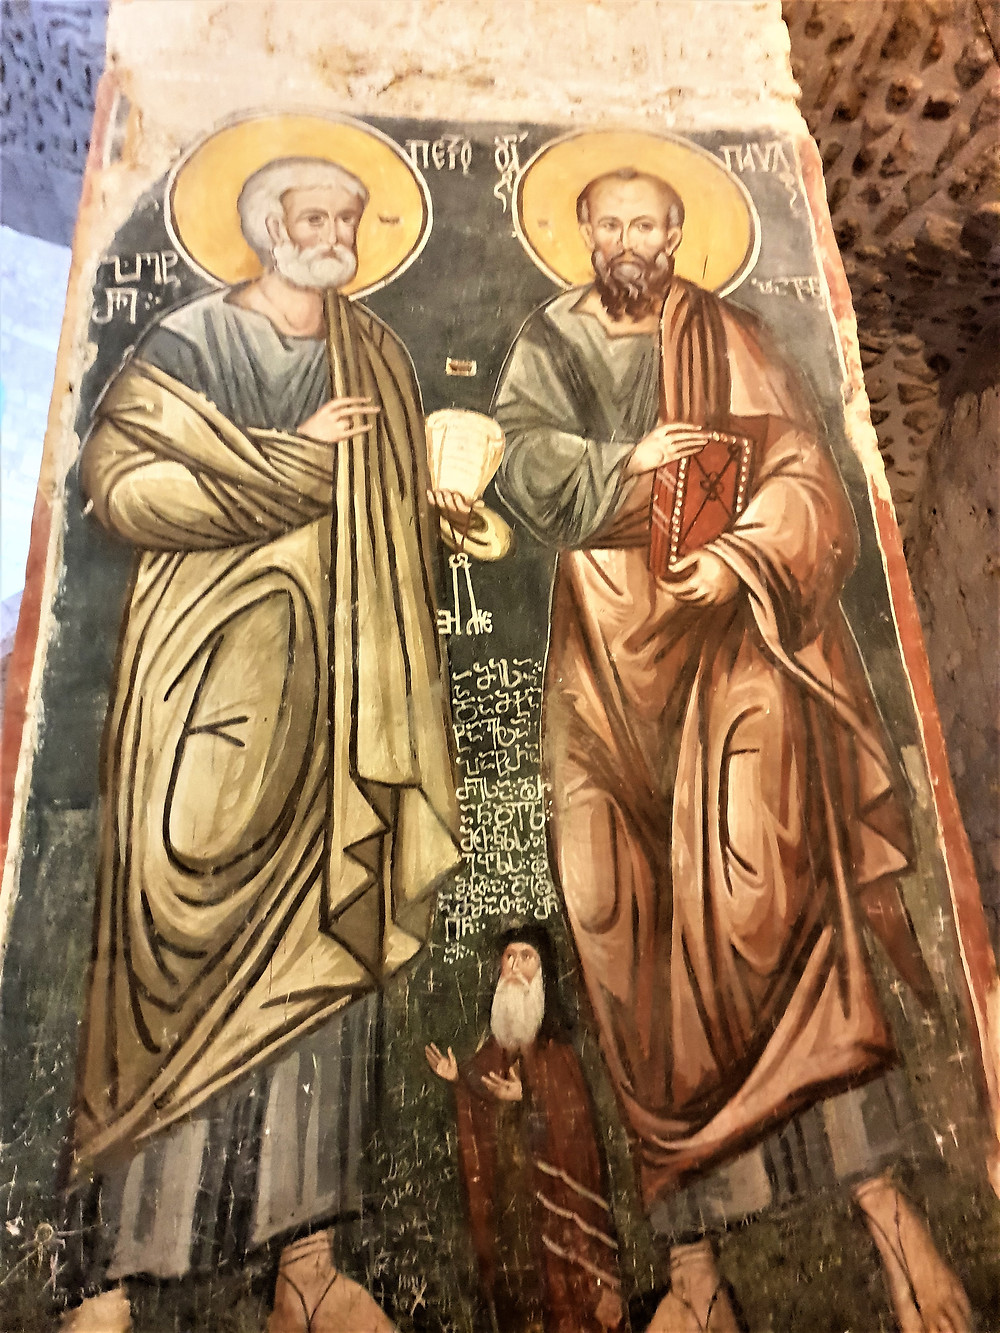 St. Paul and St. Peter XI Century